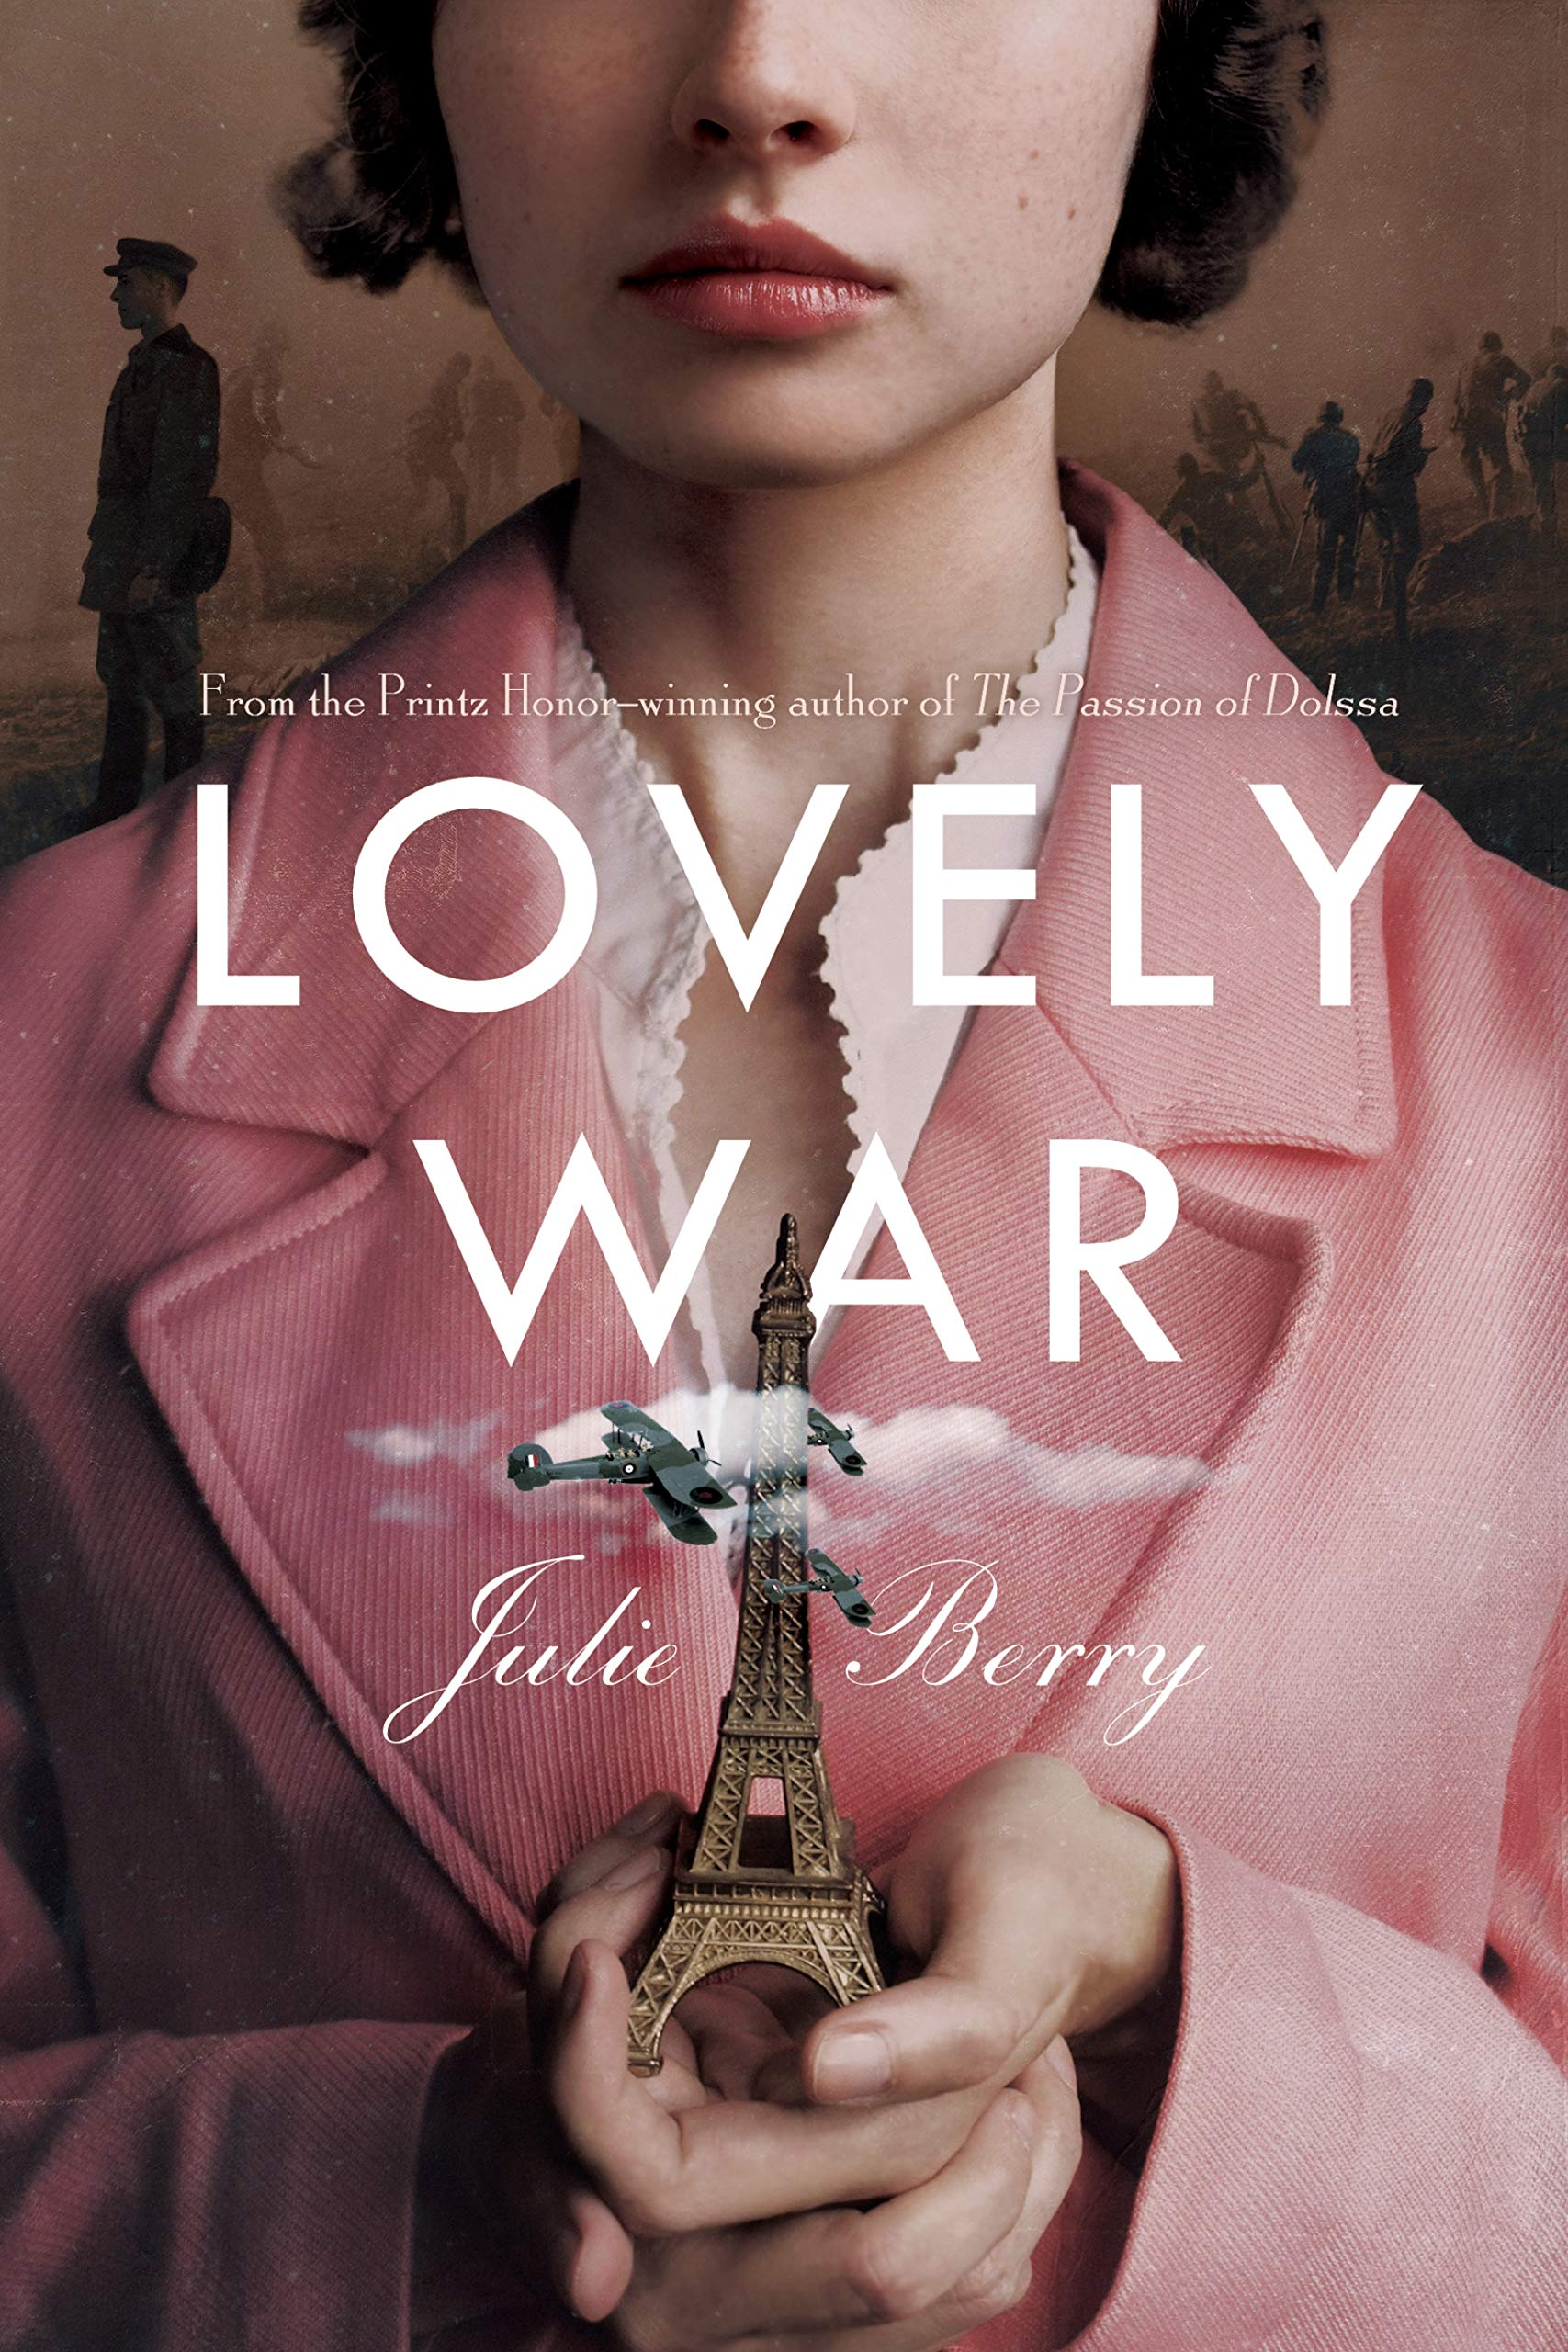 Amazon.com: Lovely War (9780451469939): Berry, Julie: Books